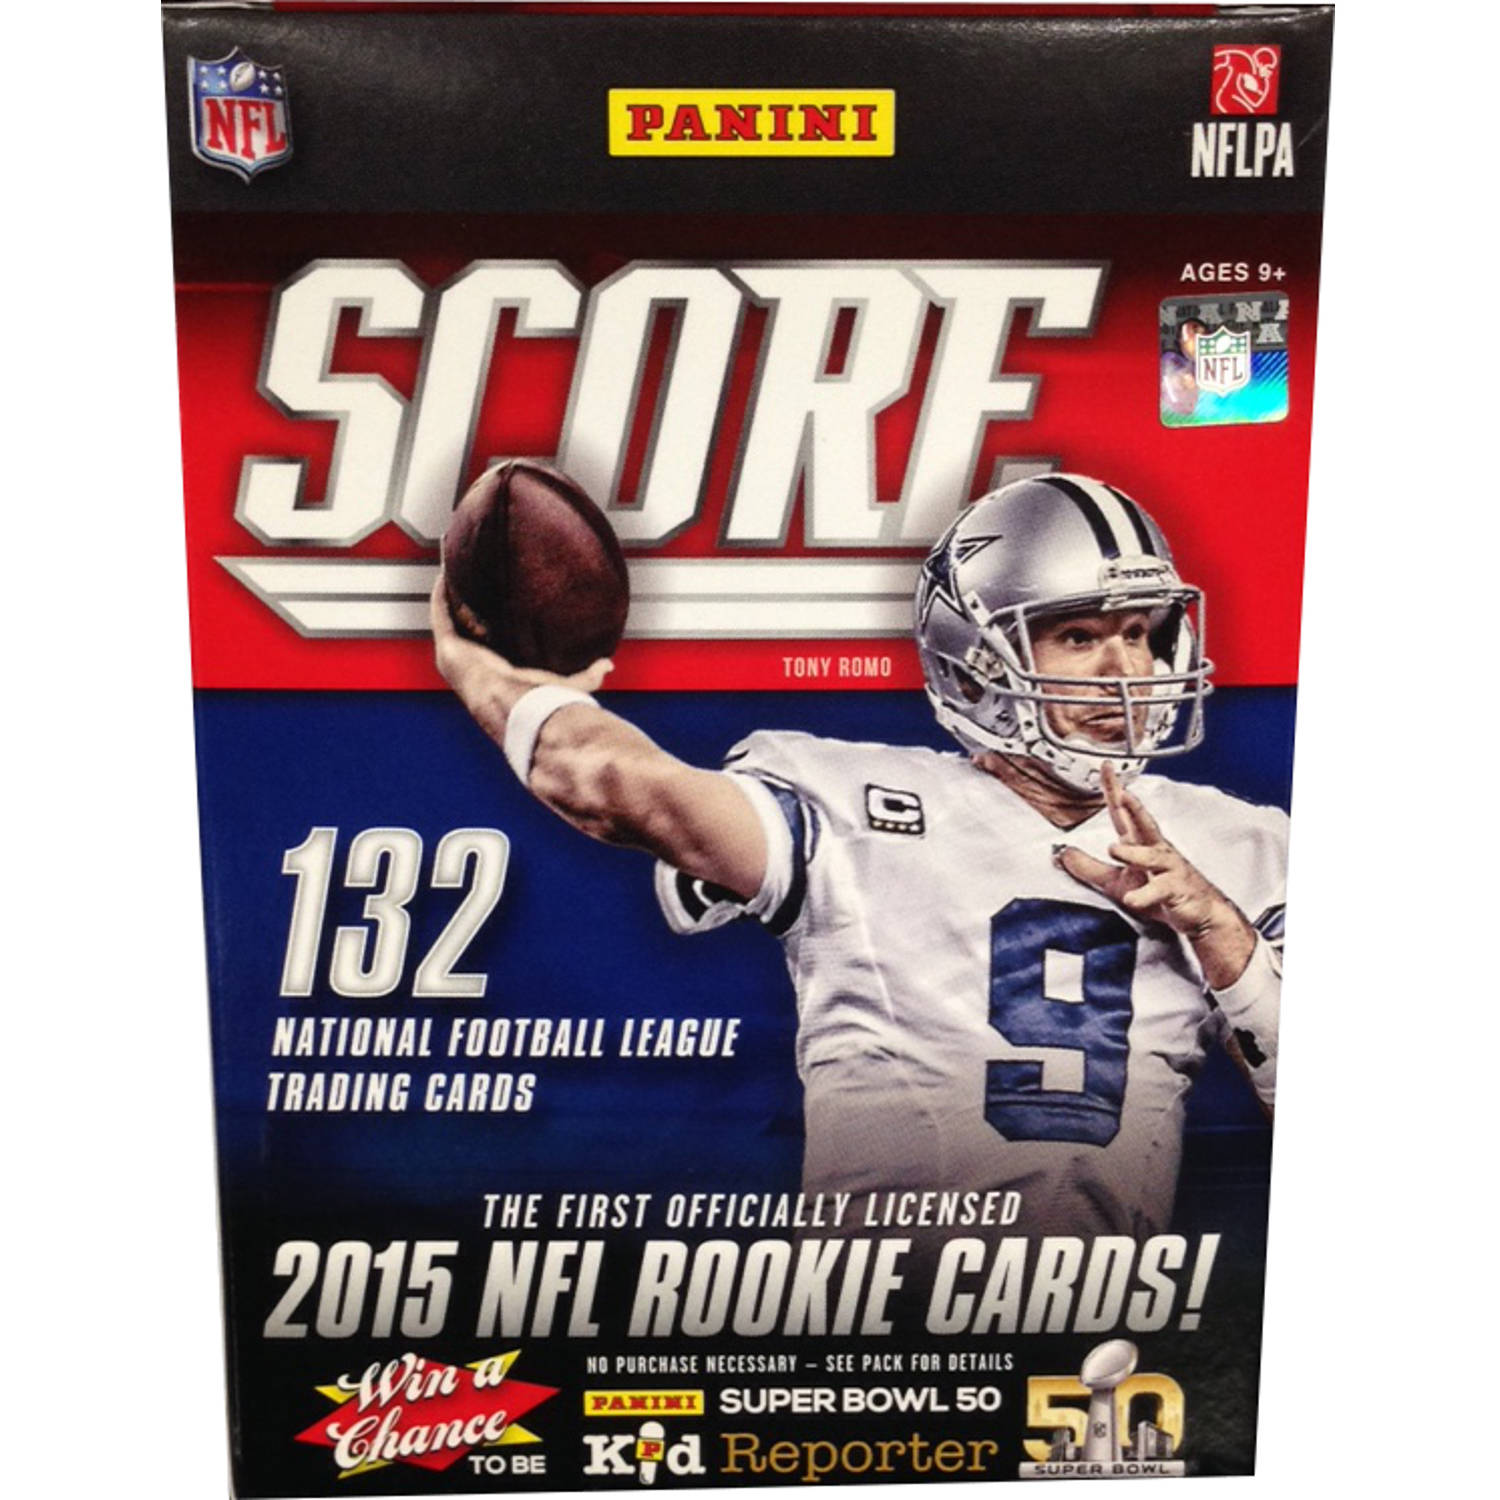 2015 Panini NFL Score Value Box